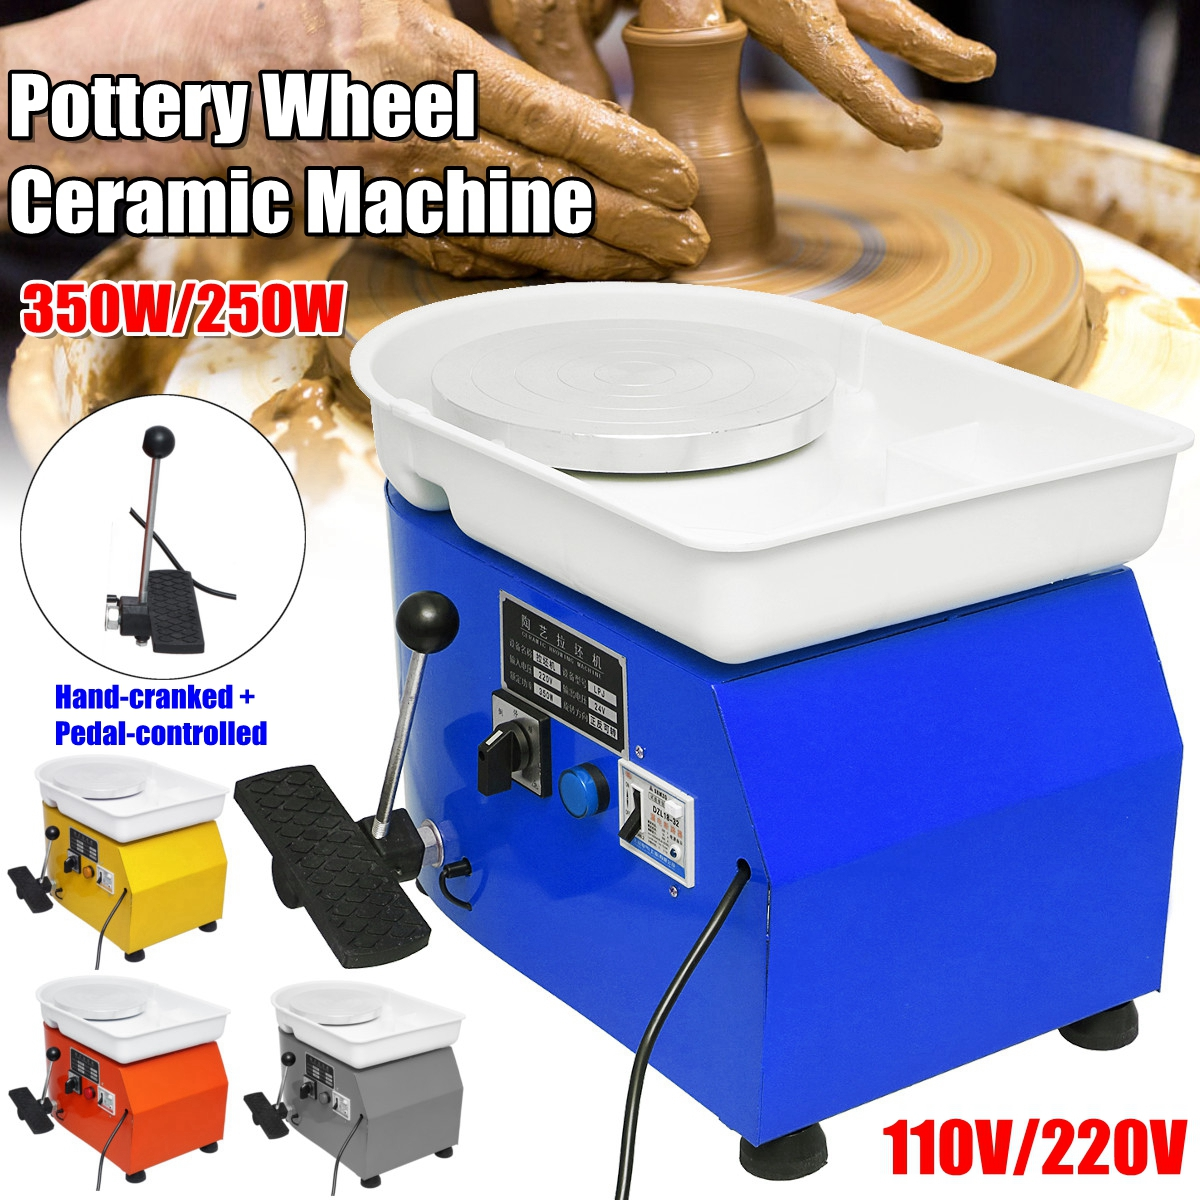 220V Pottery Forming Machine 250W/350W Electric Pottery Wheel DIY Clay Tool with Tray For Ceramic Work Ceramics 25cm 350w pottery wheel pottery diy clay machine for ceramic work ceramics clay 220v children learning machine